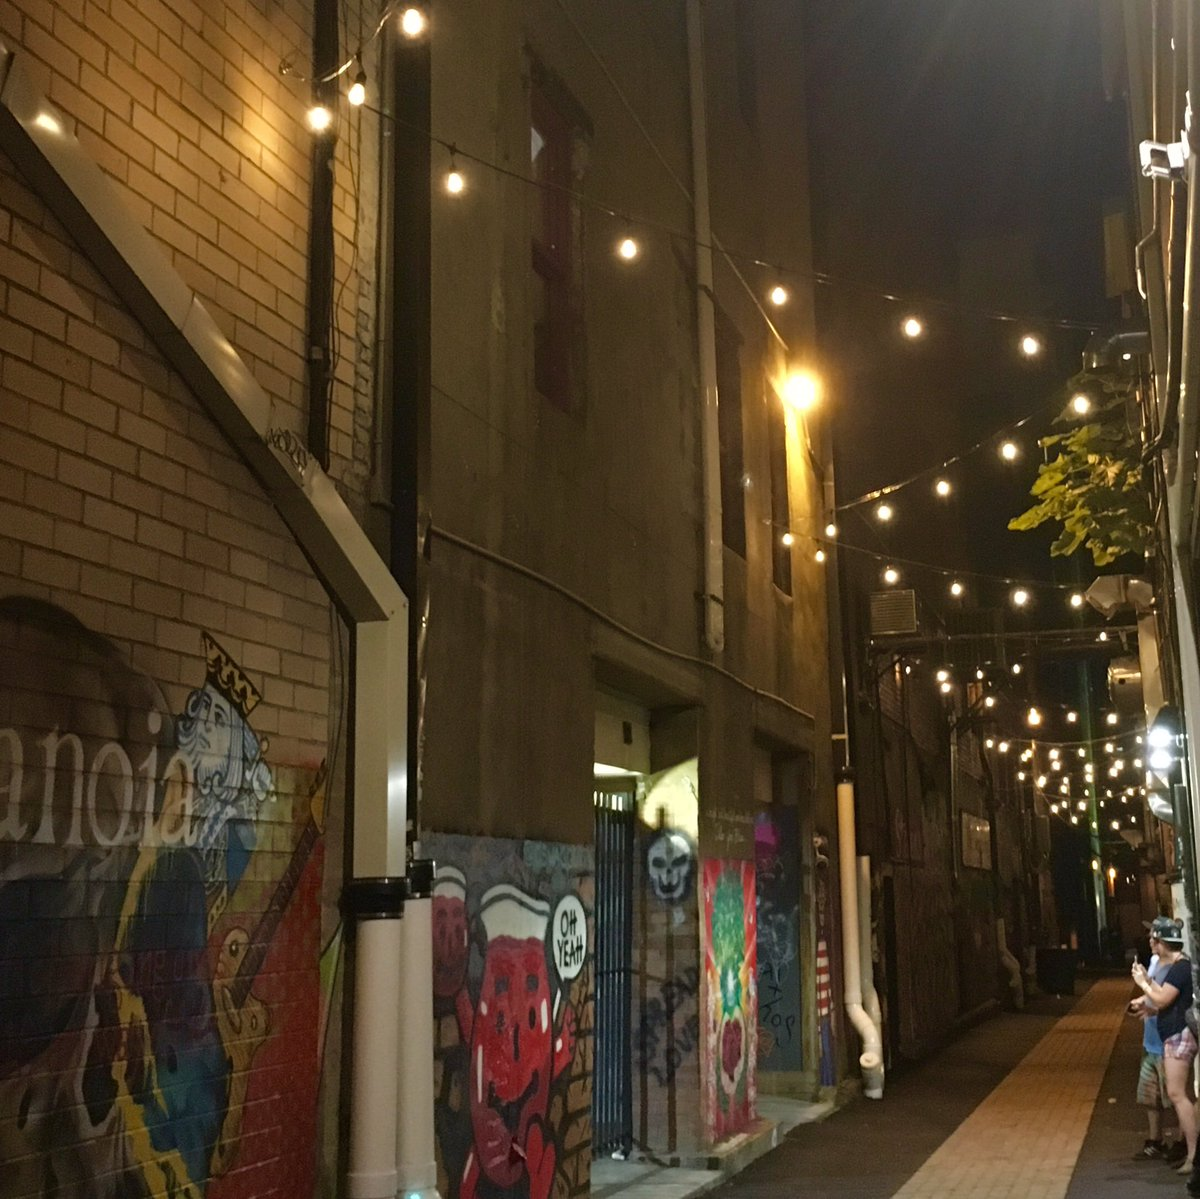 Art Alley has gotten a bit of a facelift. New paving and new lights! https://t.co/Ro2SweQd0k